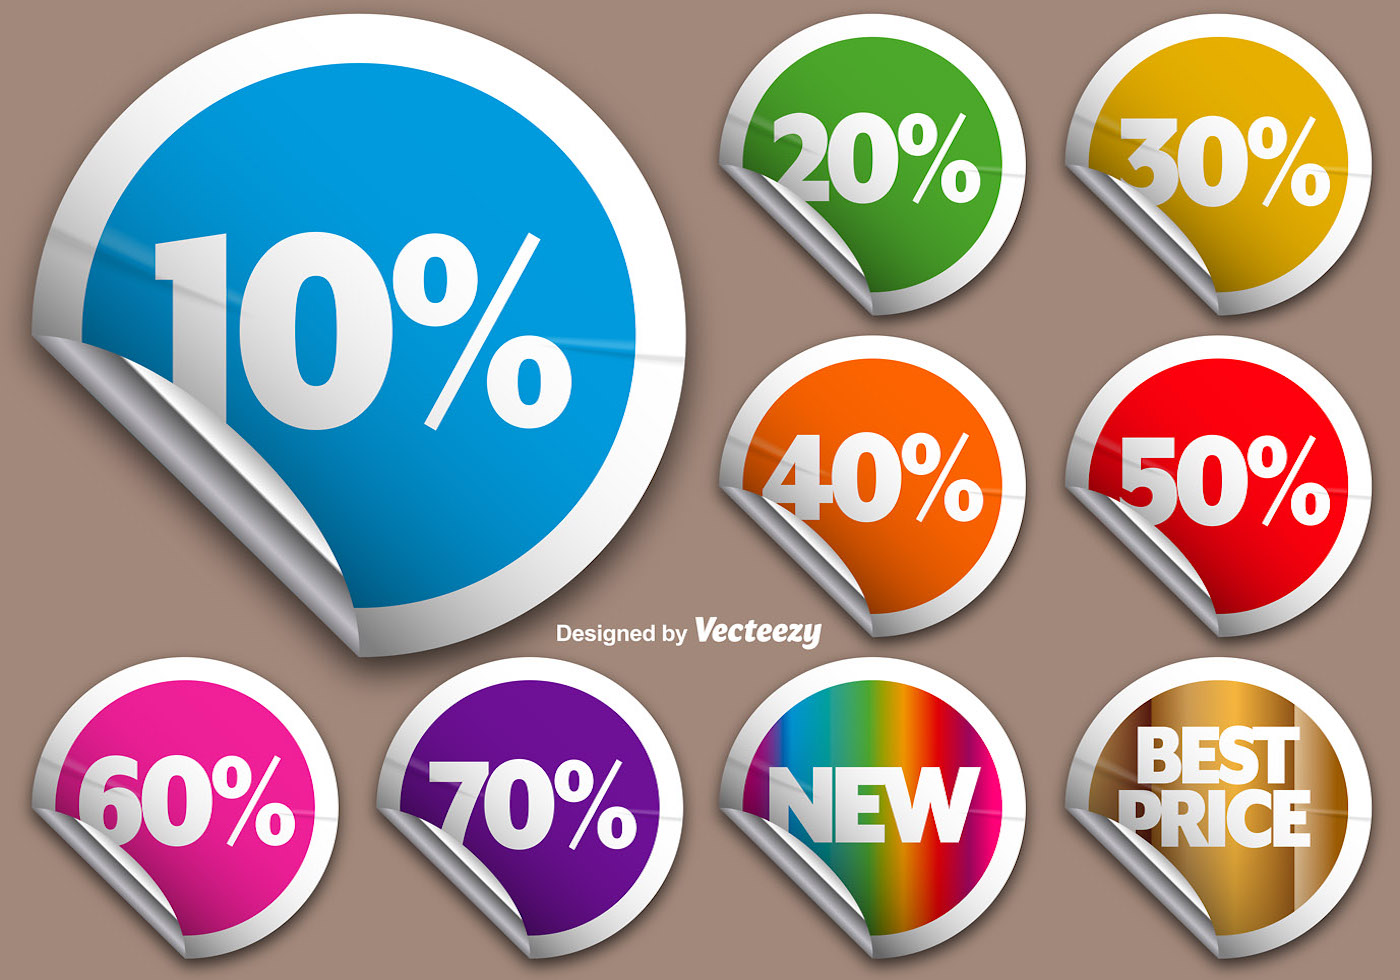 Vector set of colorful rounded promotional stickers download free vector art stock graphics images